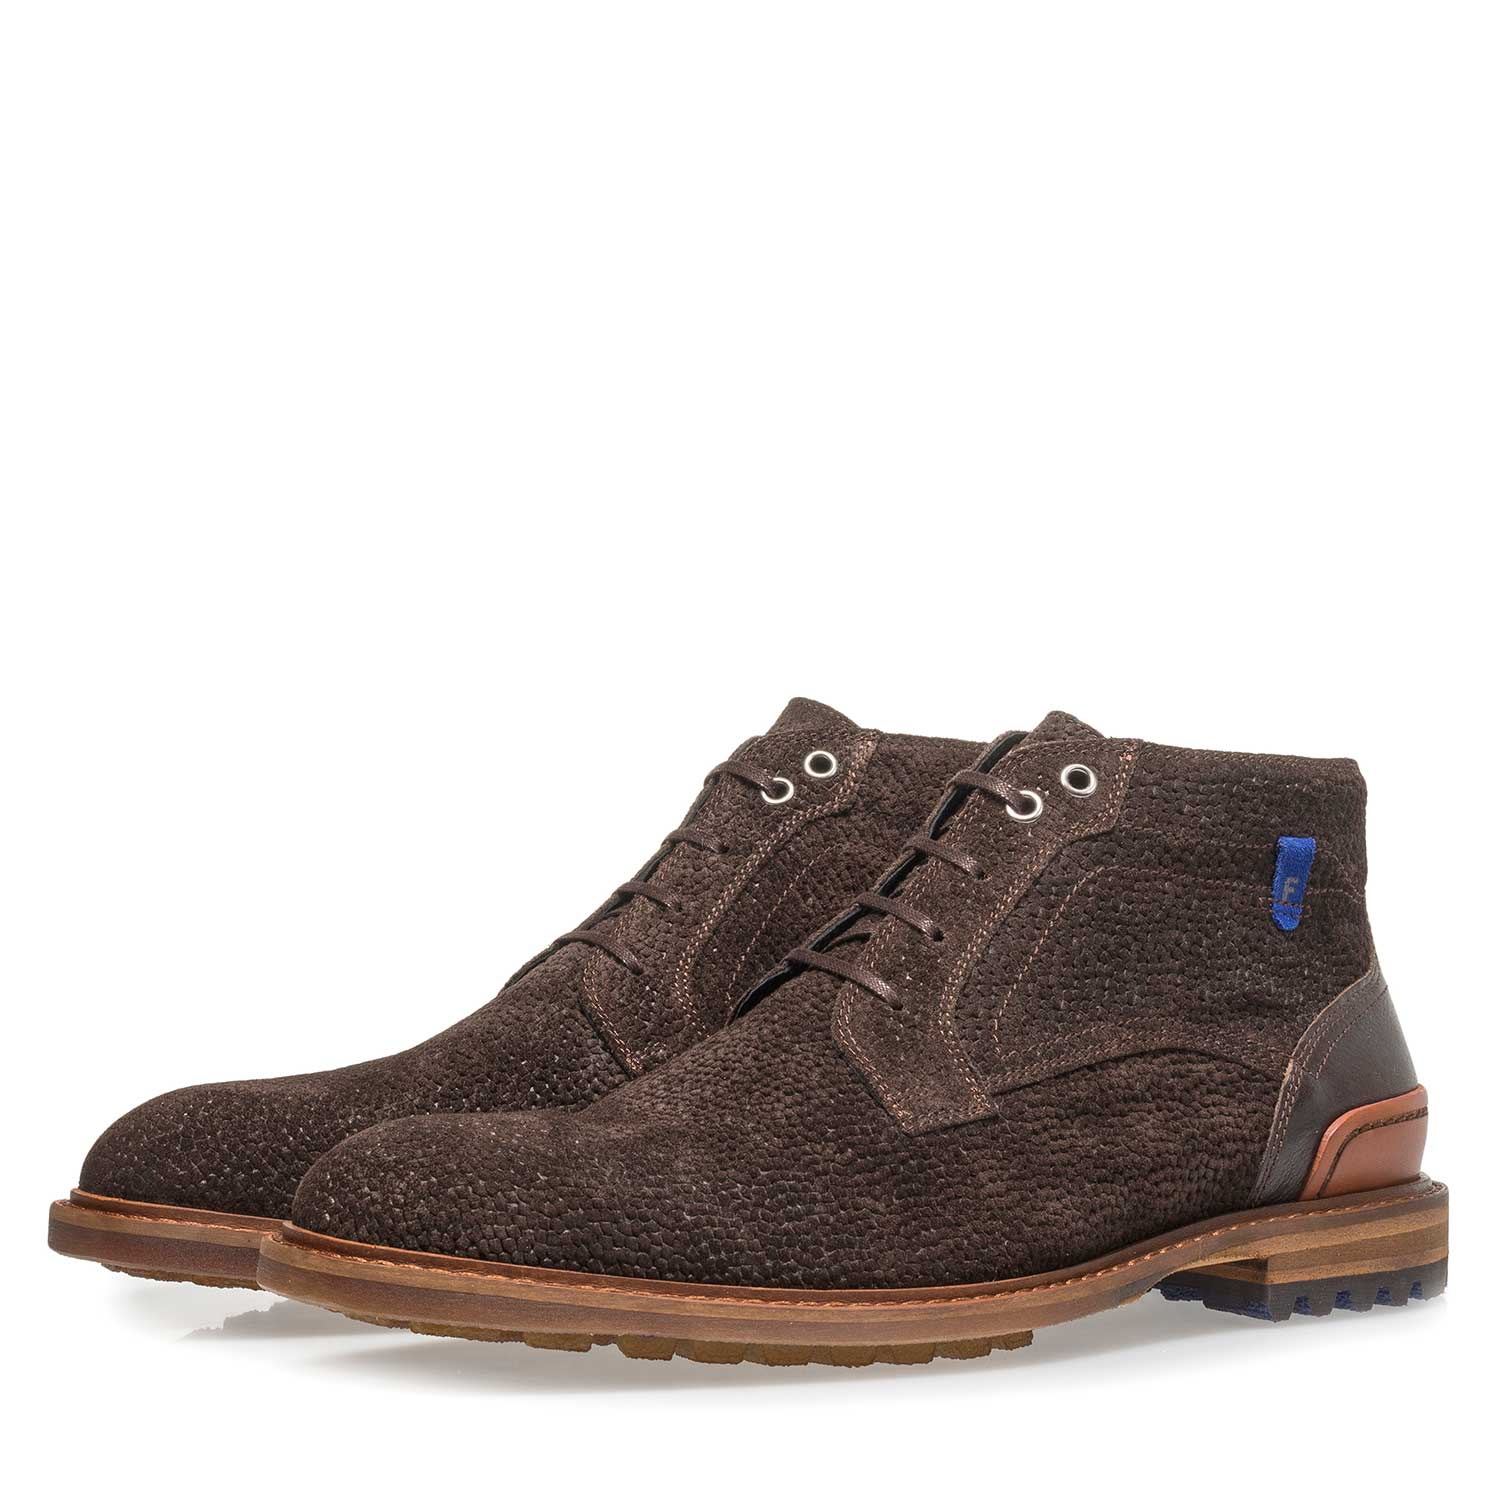 20228/29 - Dark brown printed suede leather lace boot